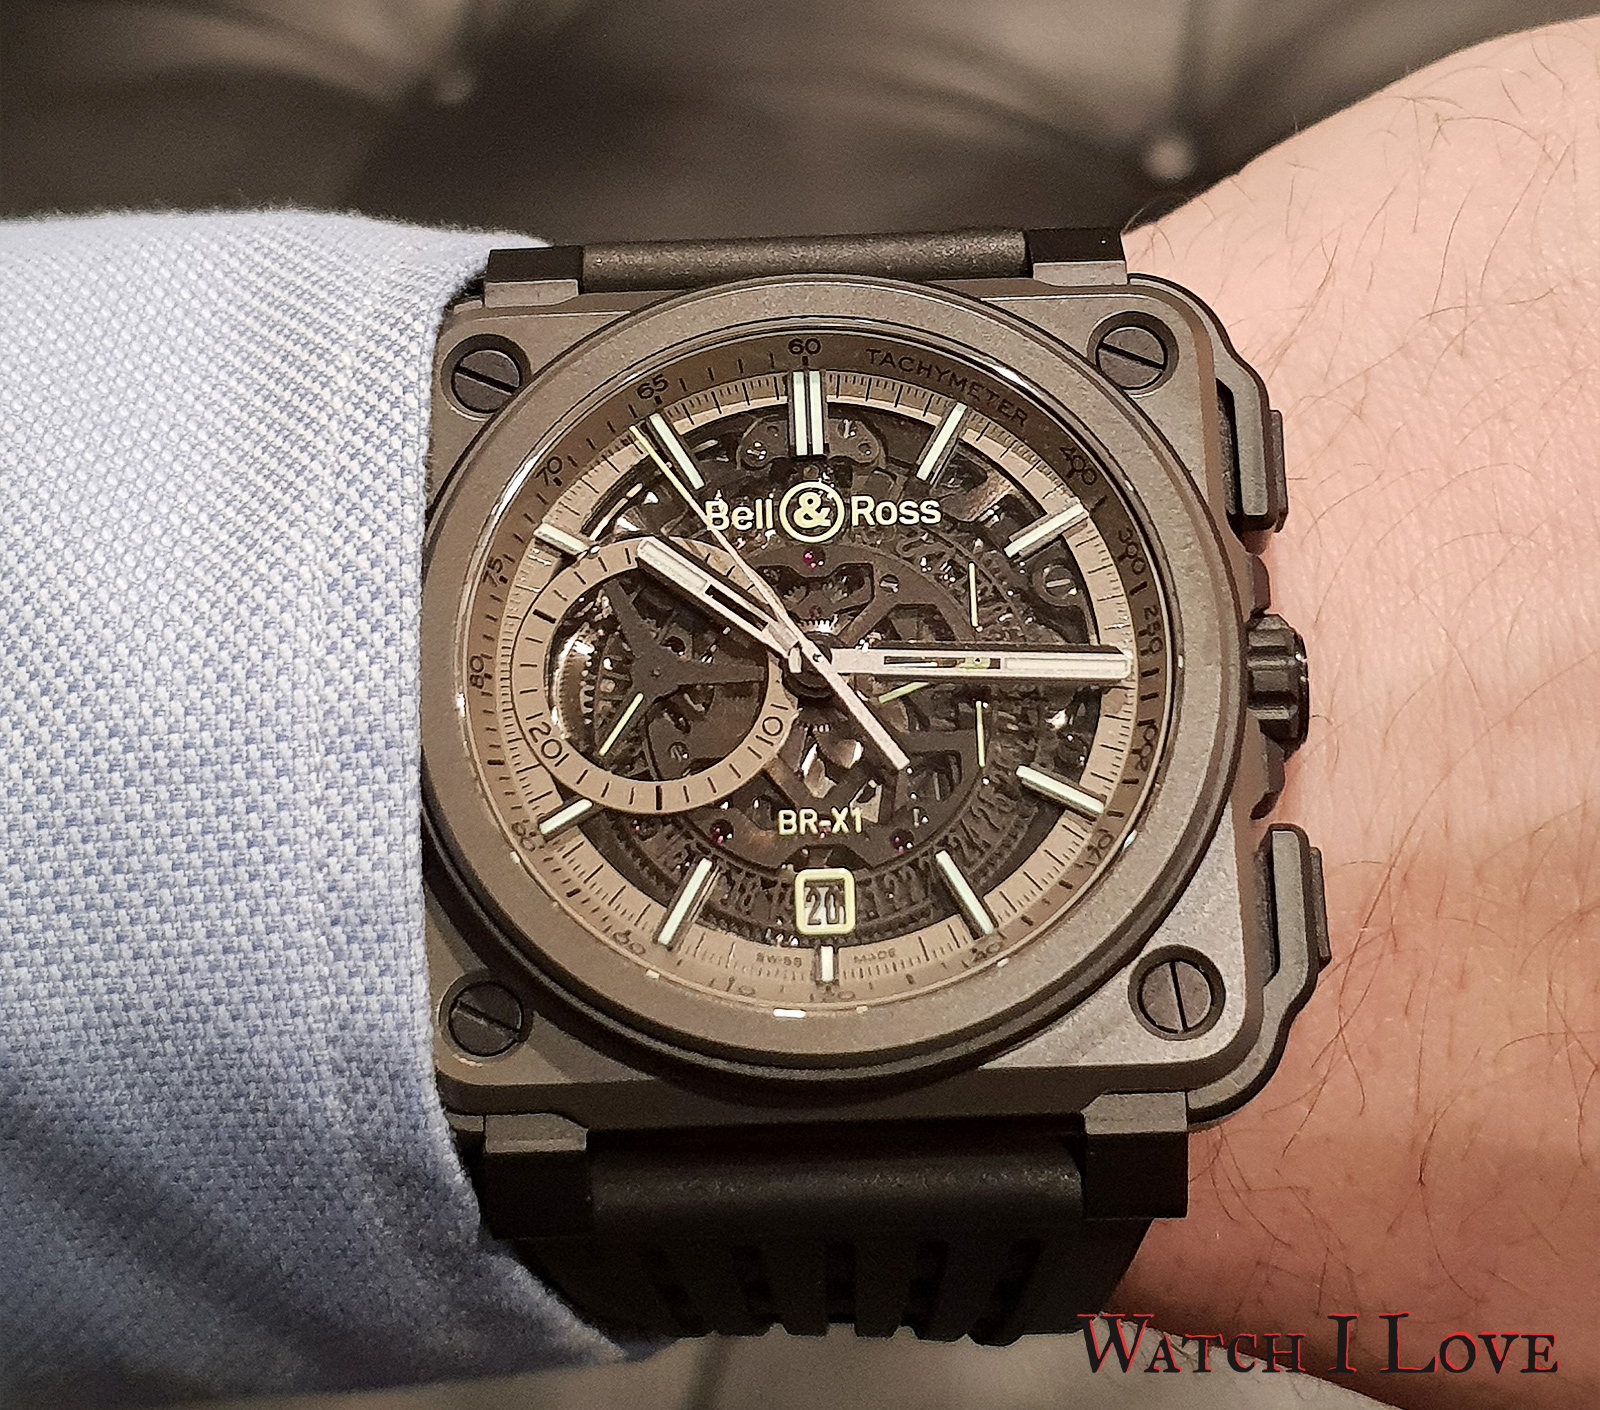 Bell&Ross BR-X1 Military Wrist